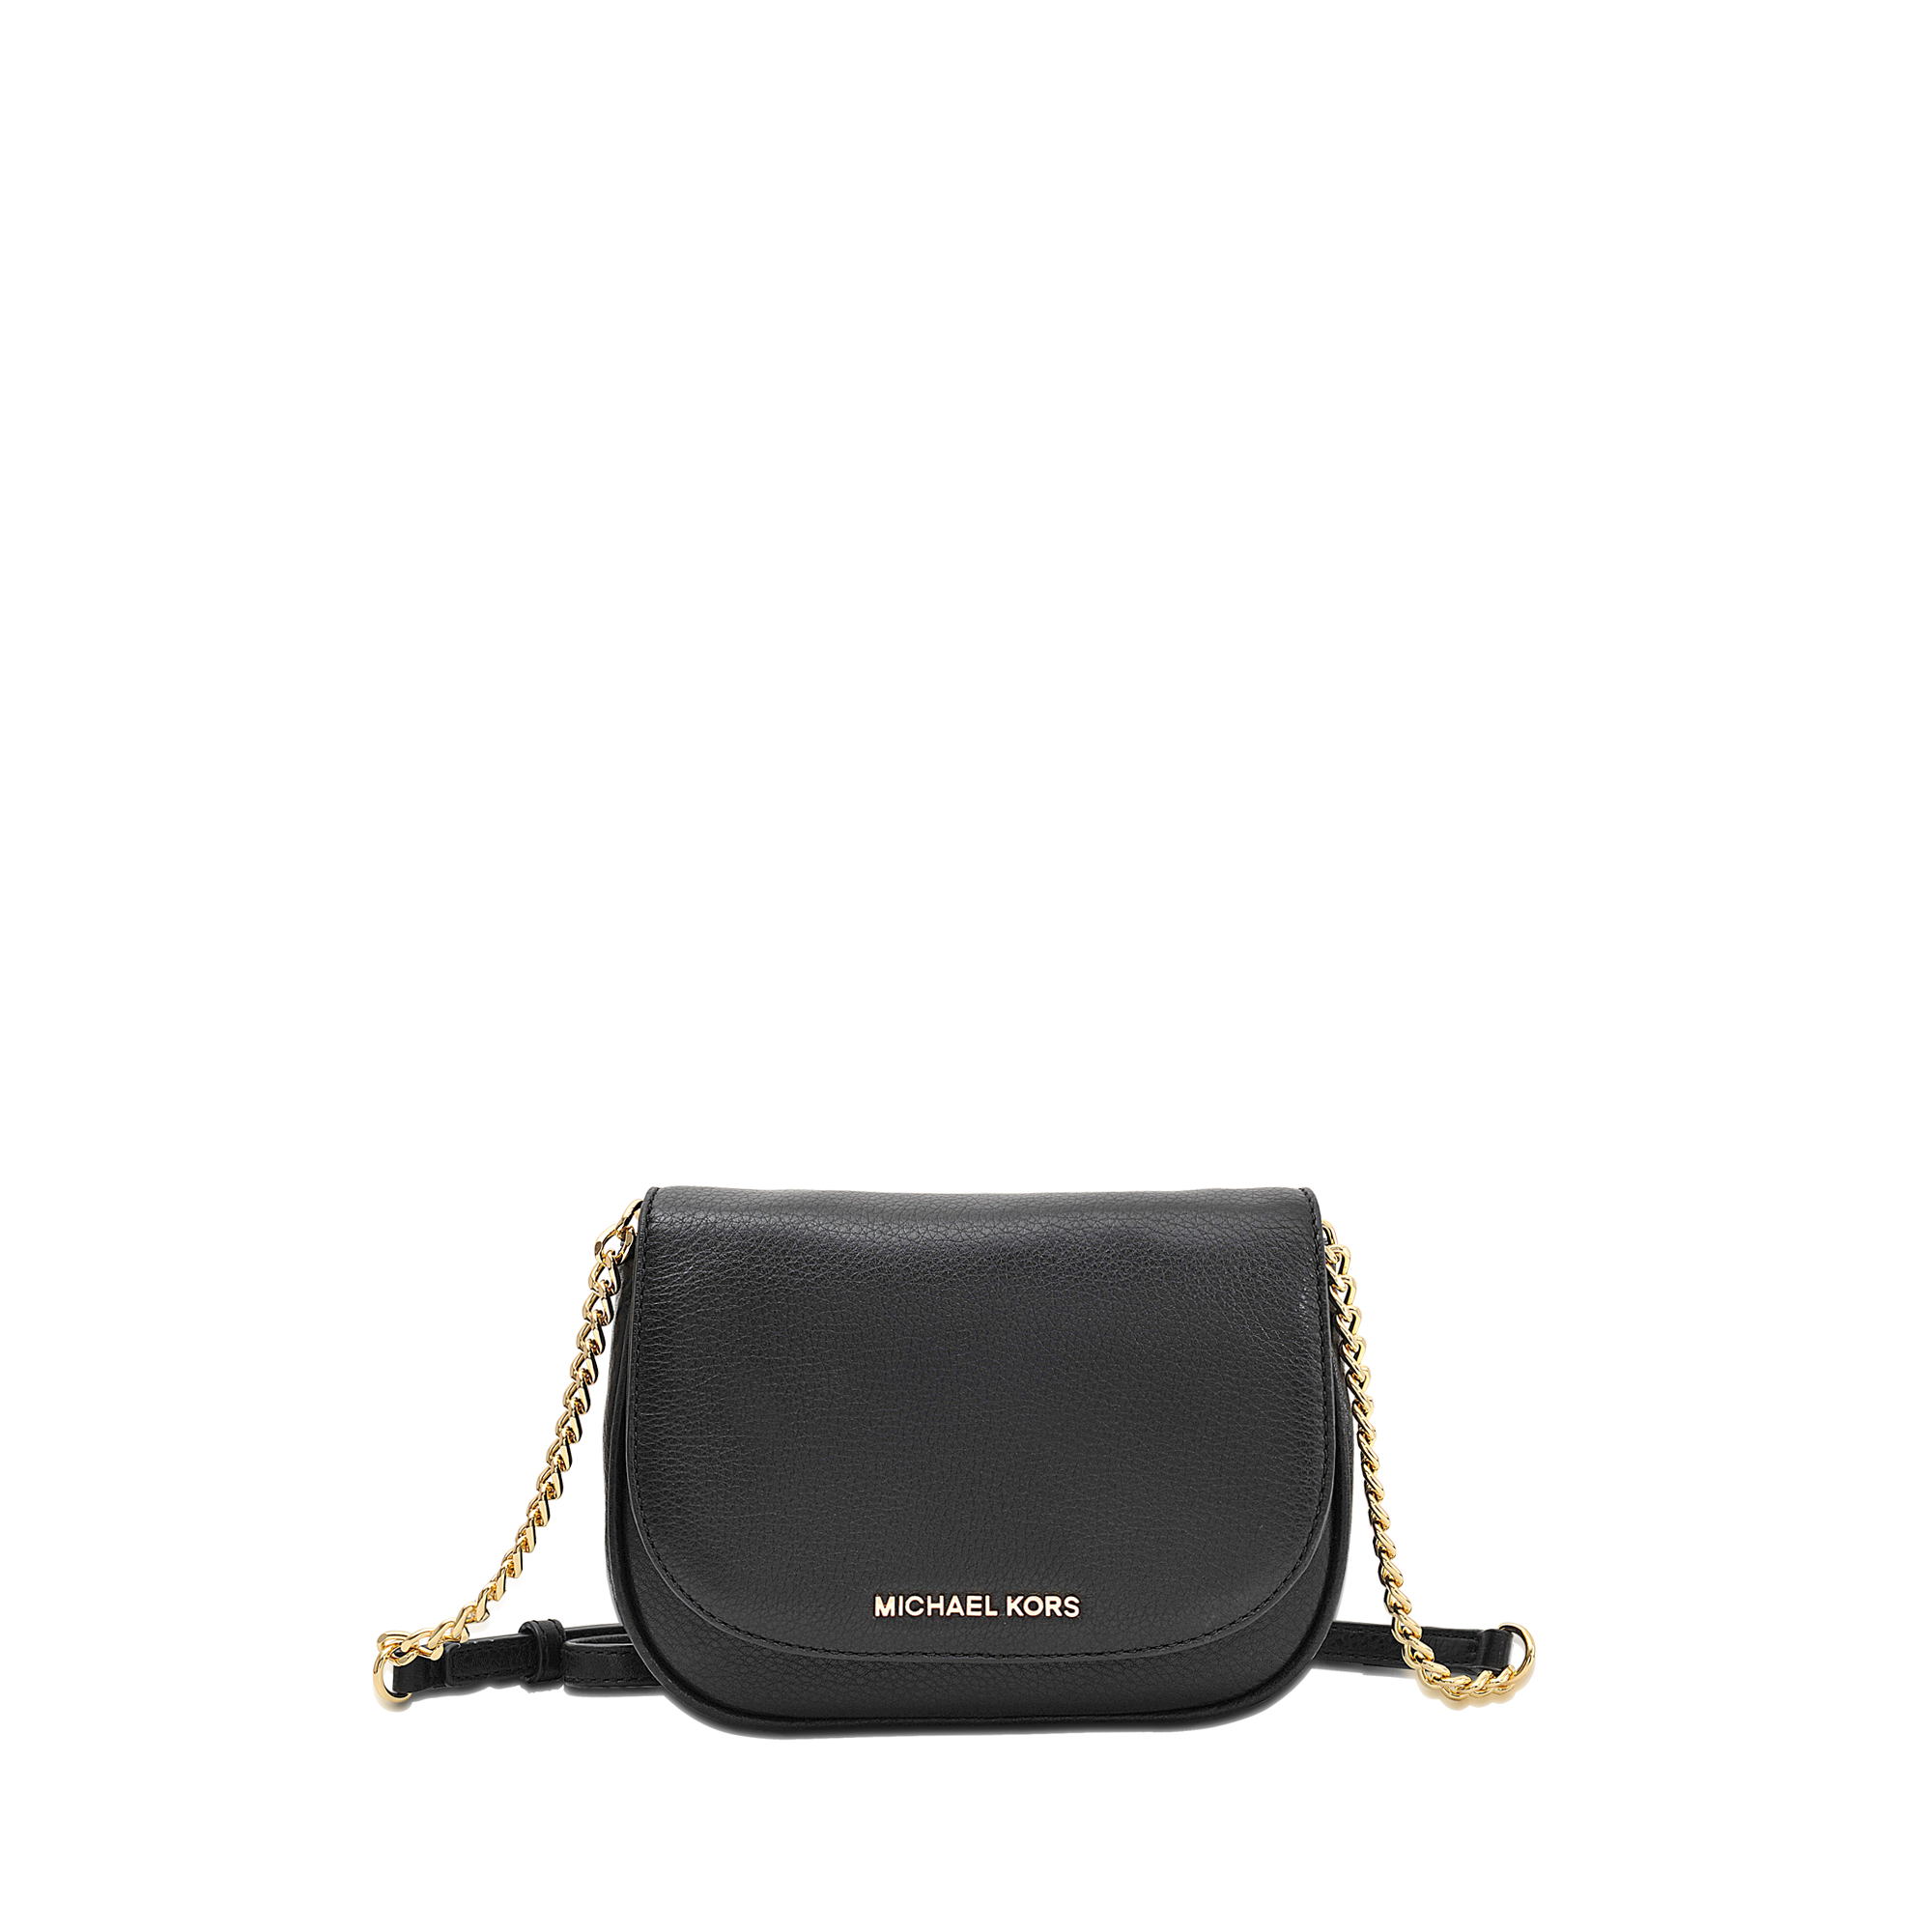 f1340a1eb171c inexpensive michael kors black purse small 06849 28a18  czech lyst michael  michael kors bedford small crossbody bag in black 58a70 f75e4